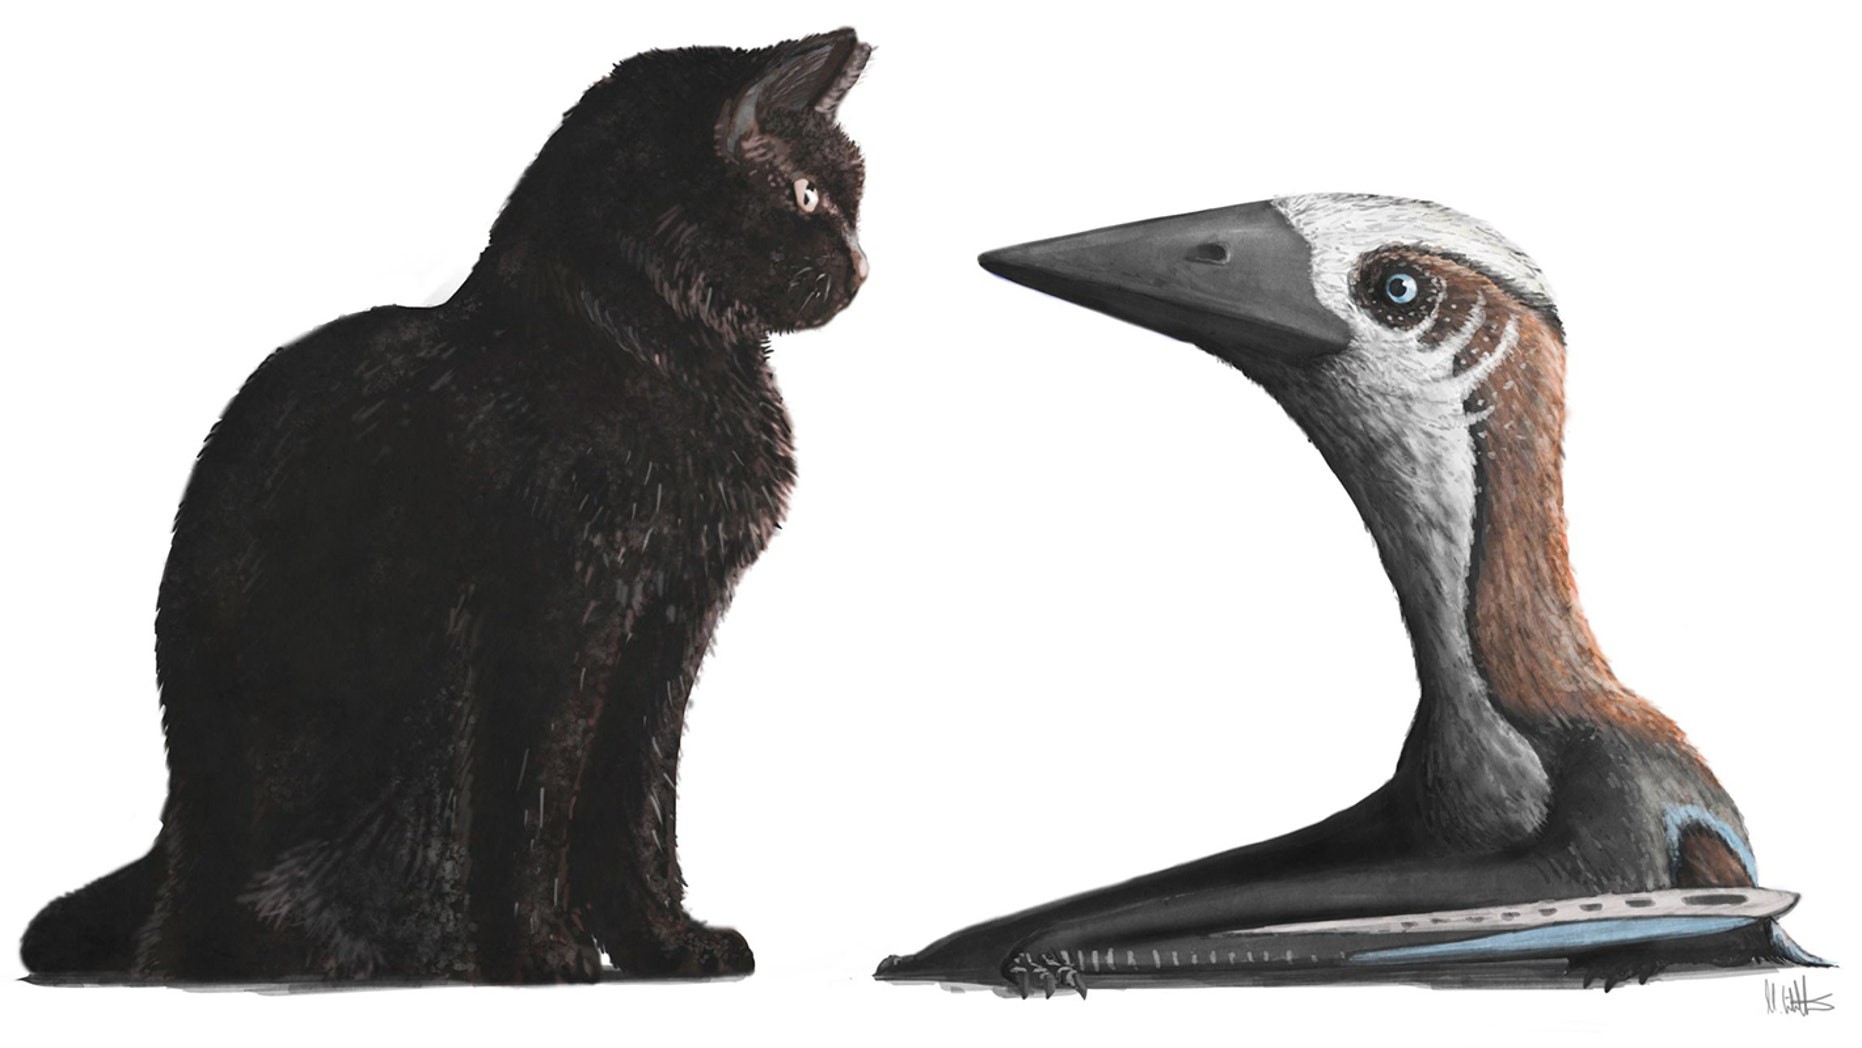 A newly discovered and unusually puny pterosaur would see eye to eye with a modern house cat.